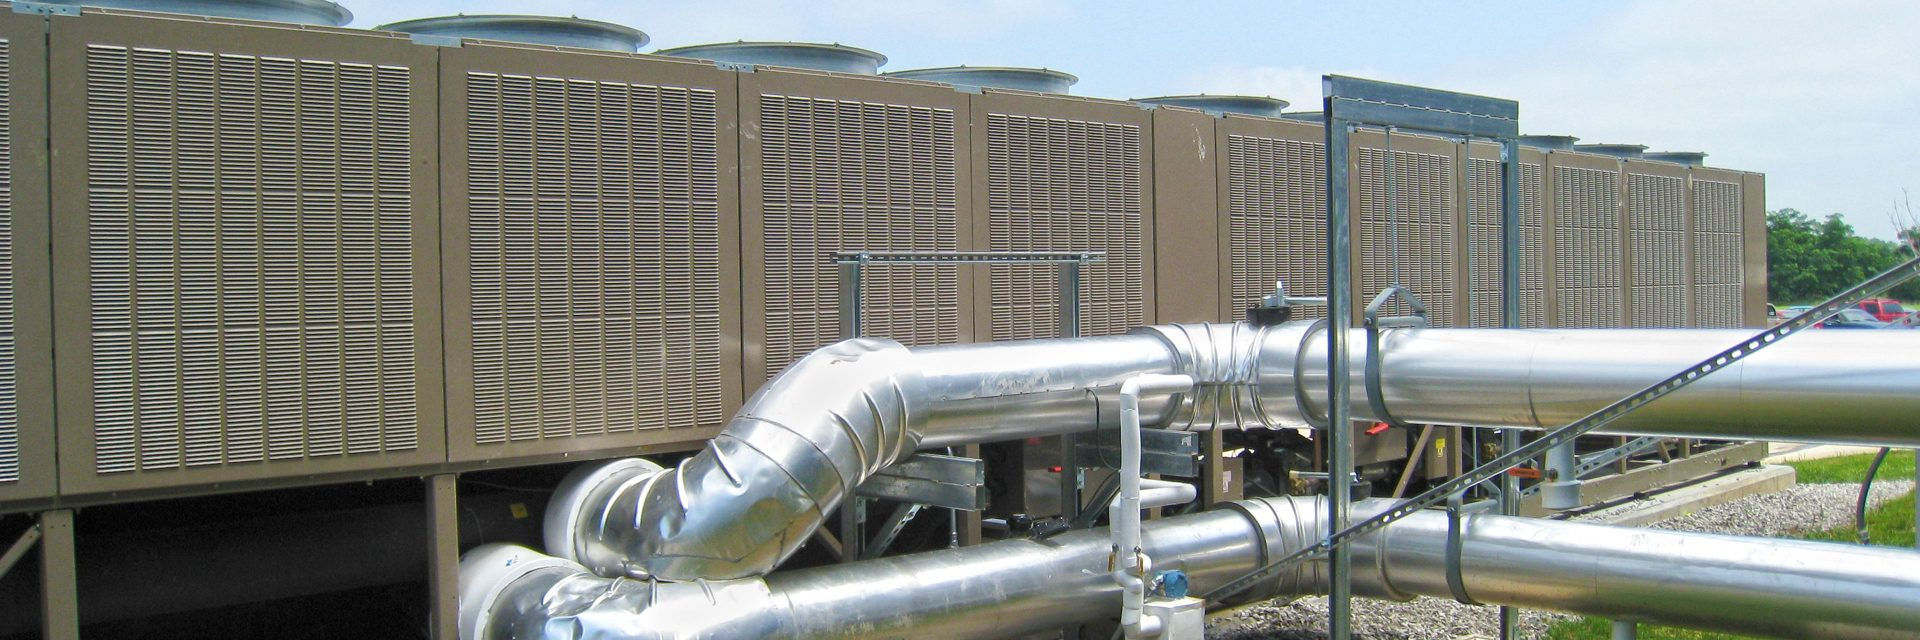 A large chiller outside, which could be made more efficient with an ice storage system